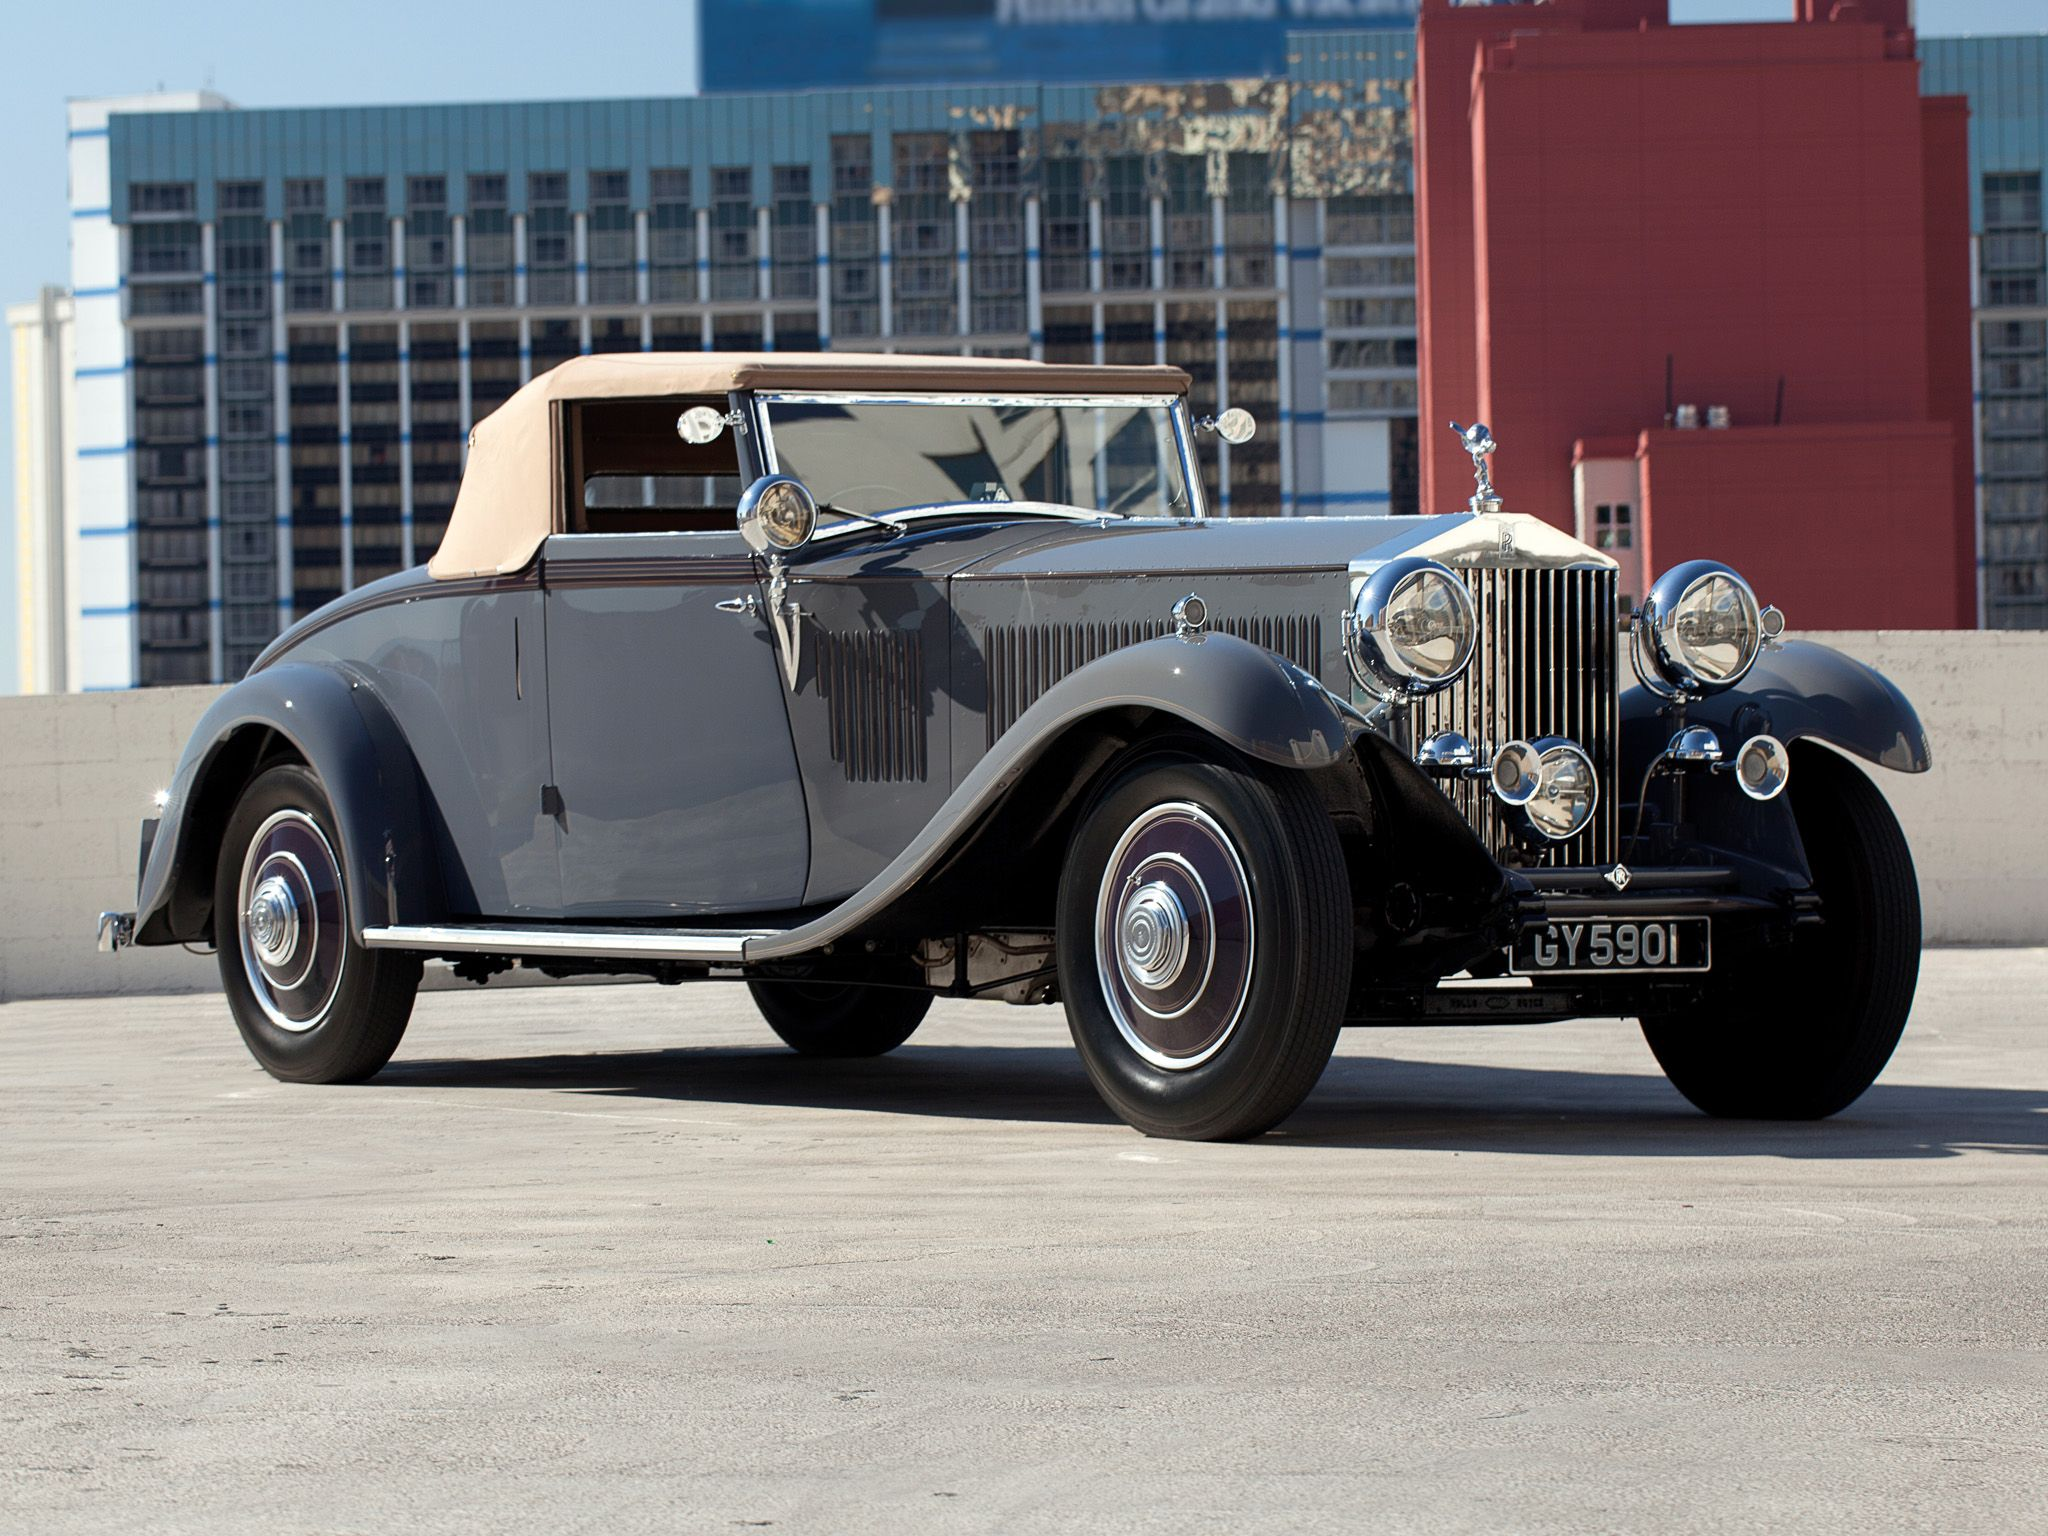 1932 Rolls Royce Phantom II Continental Drophead Coupe by Carlton